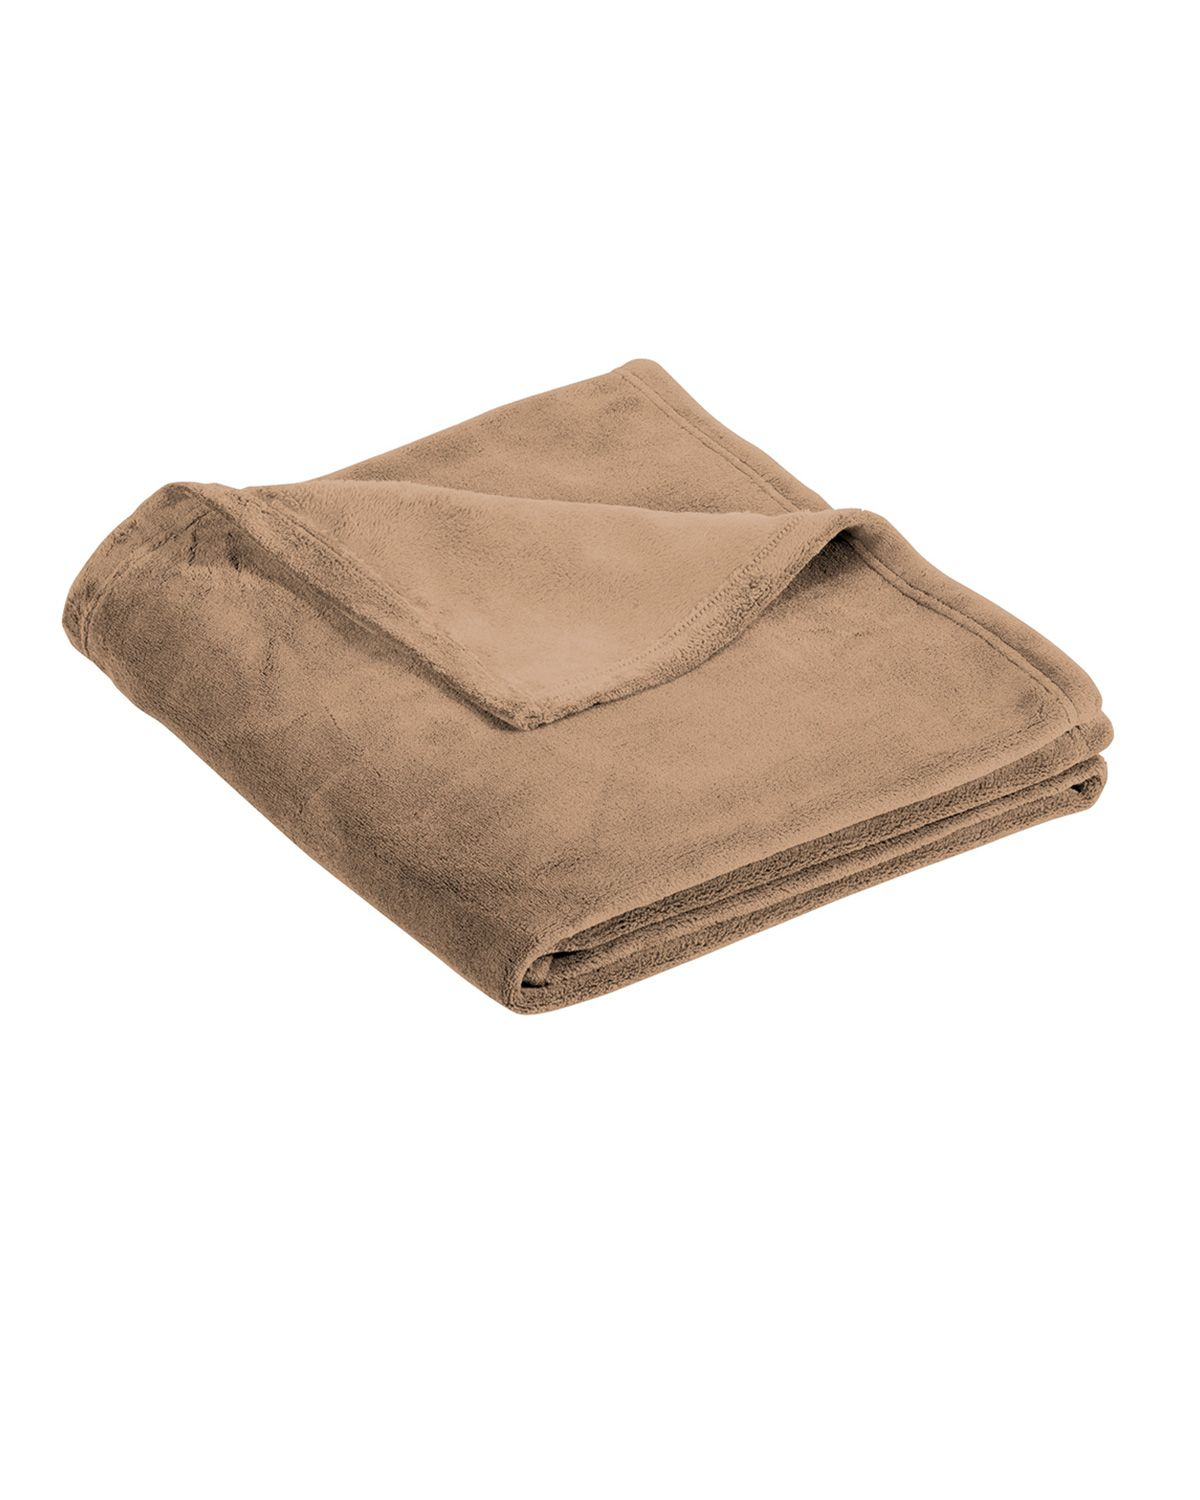 Port Authority BP31 Ultra Plush Blanket - Fawn - One Size from Port Authority